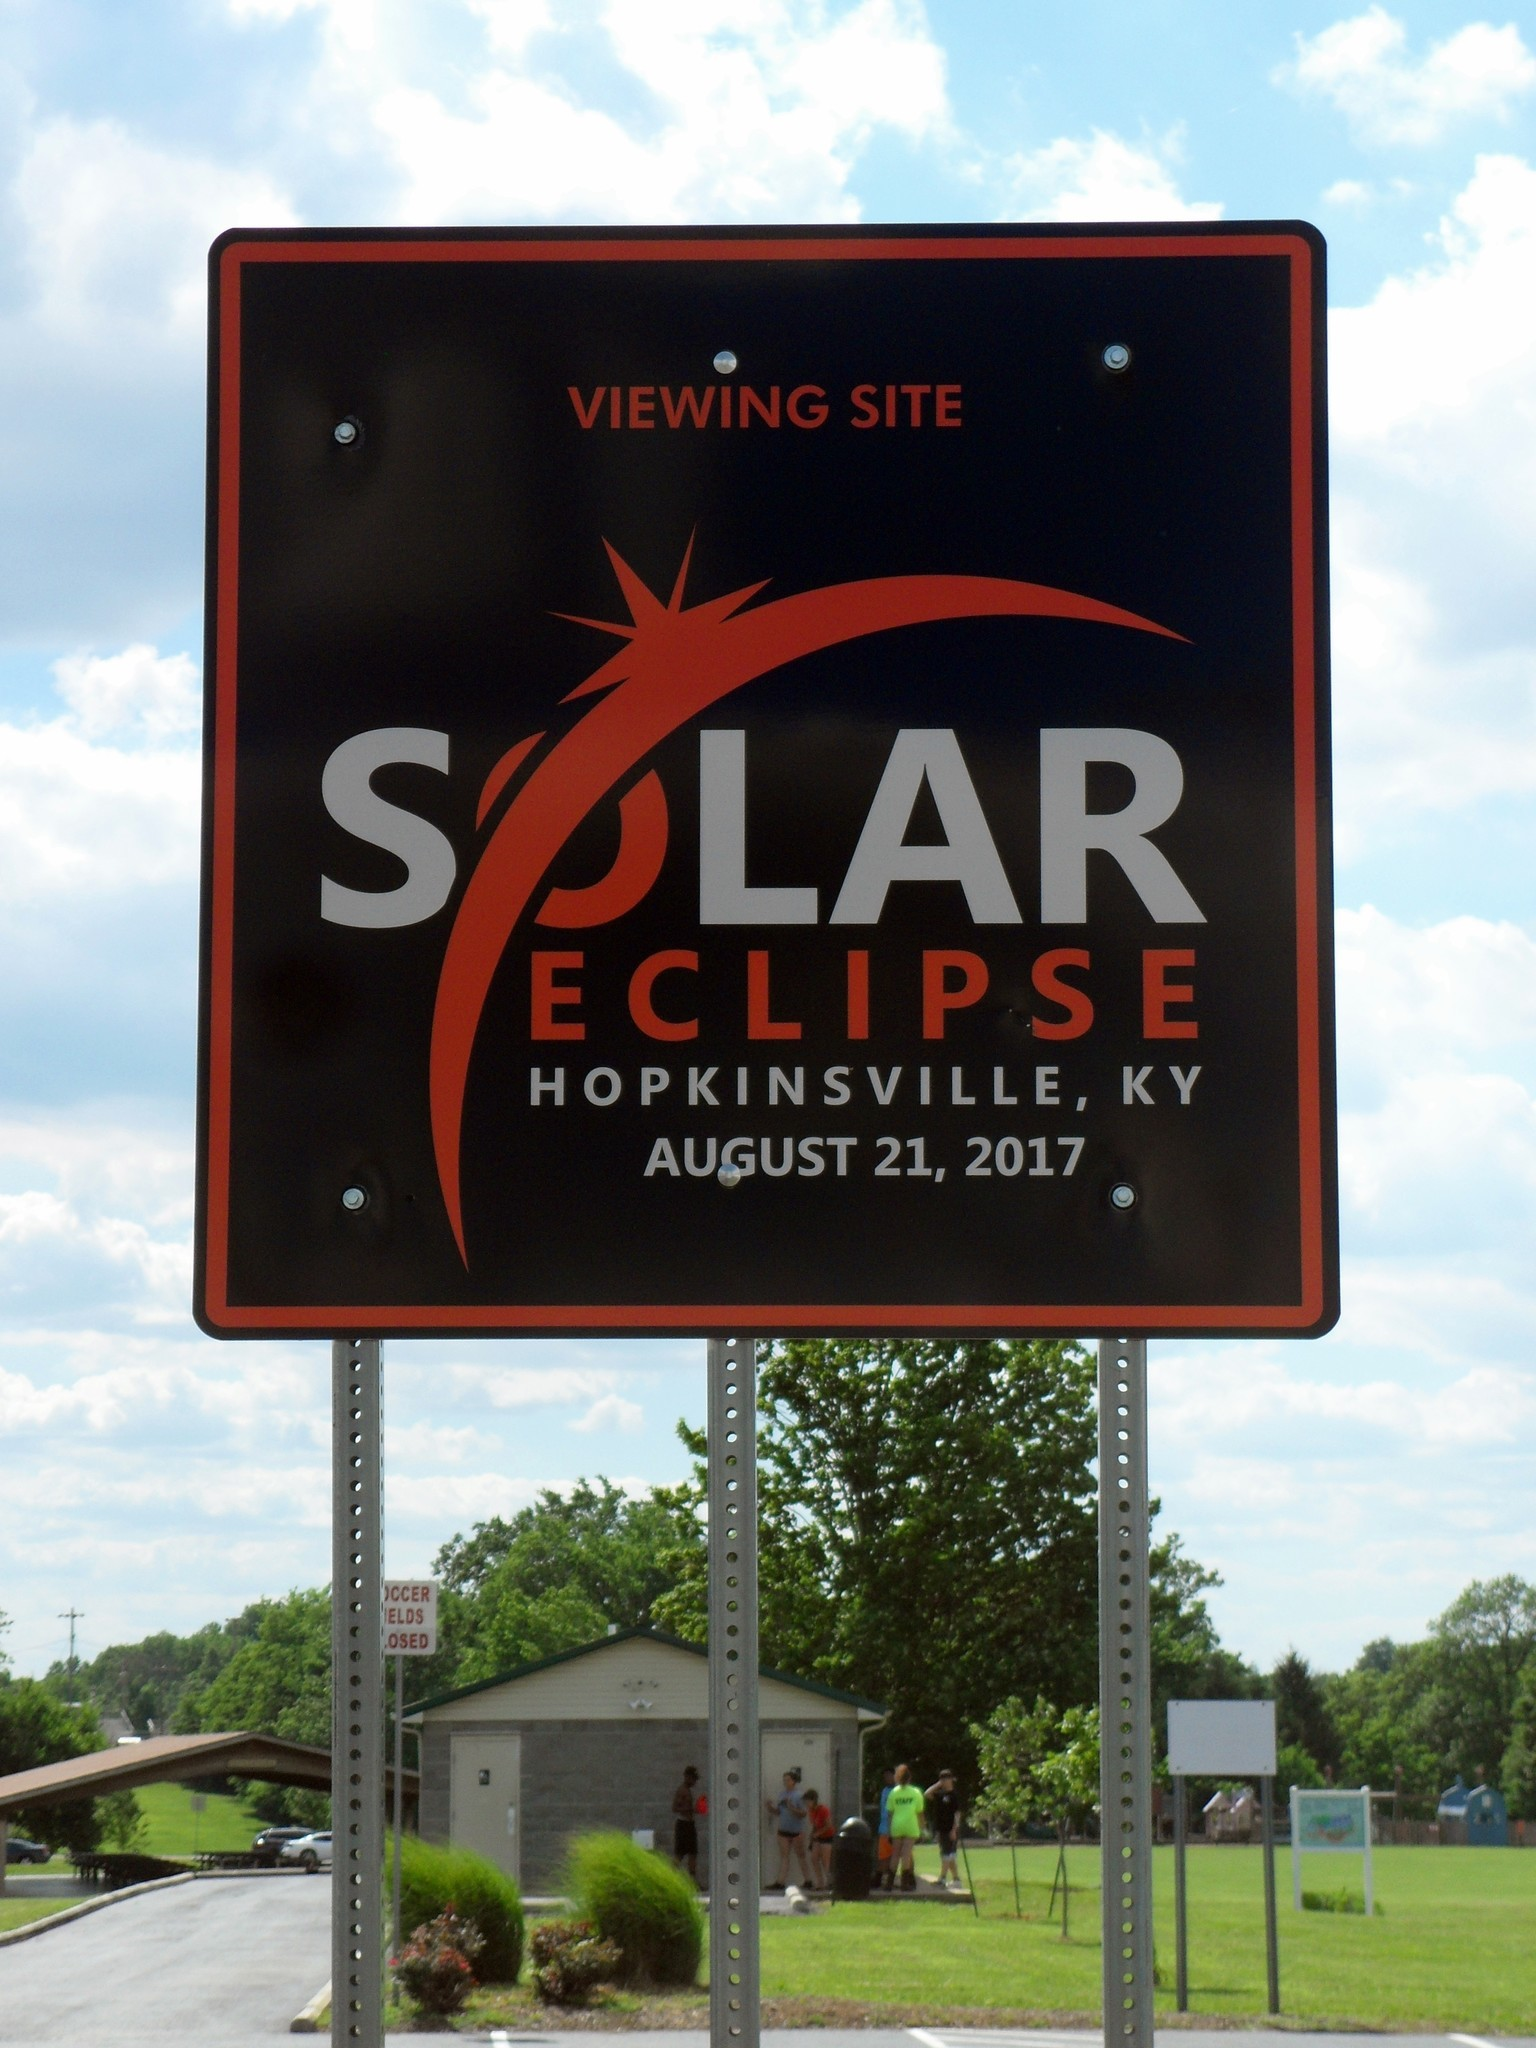 A sign showcases the upcoming solar eclipse in Hopkinsville, Ky.